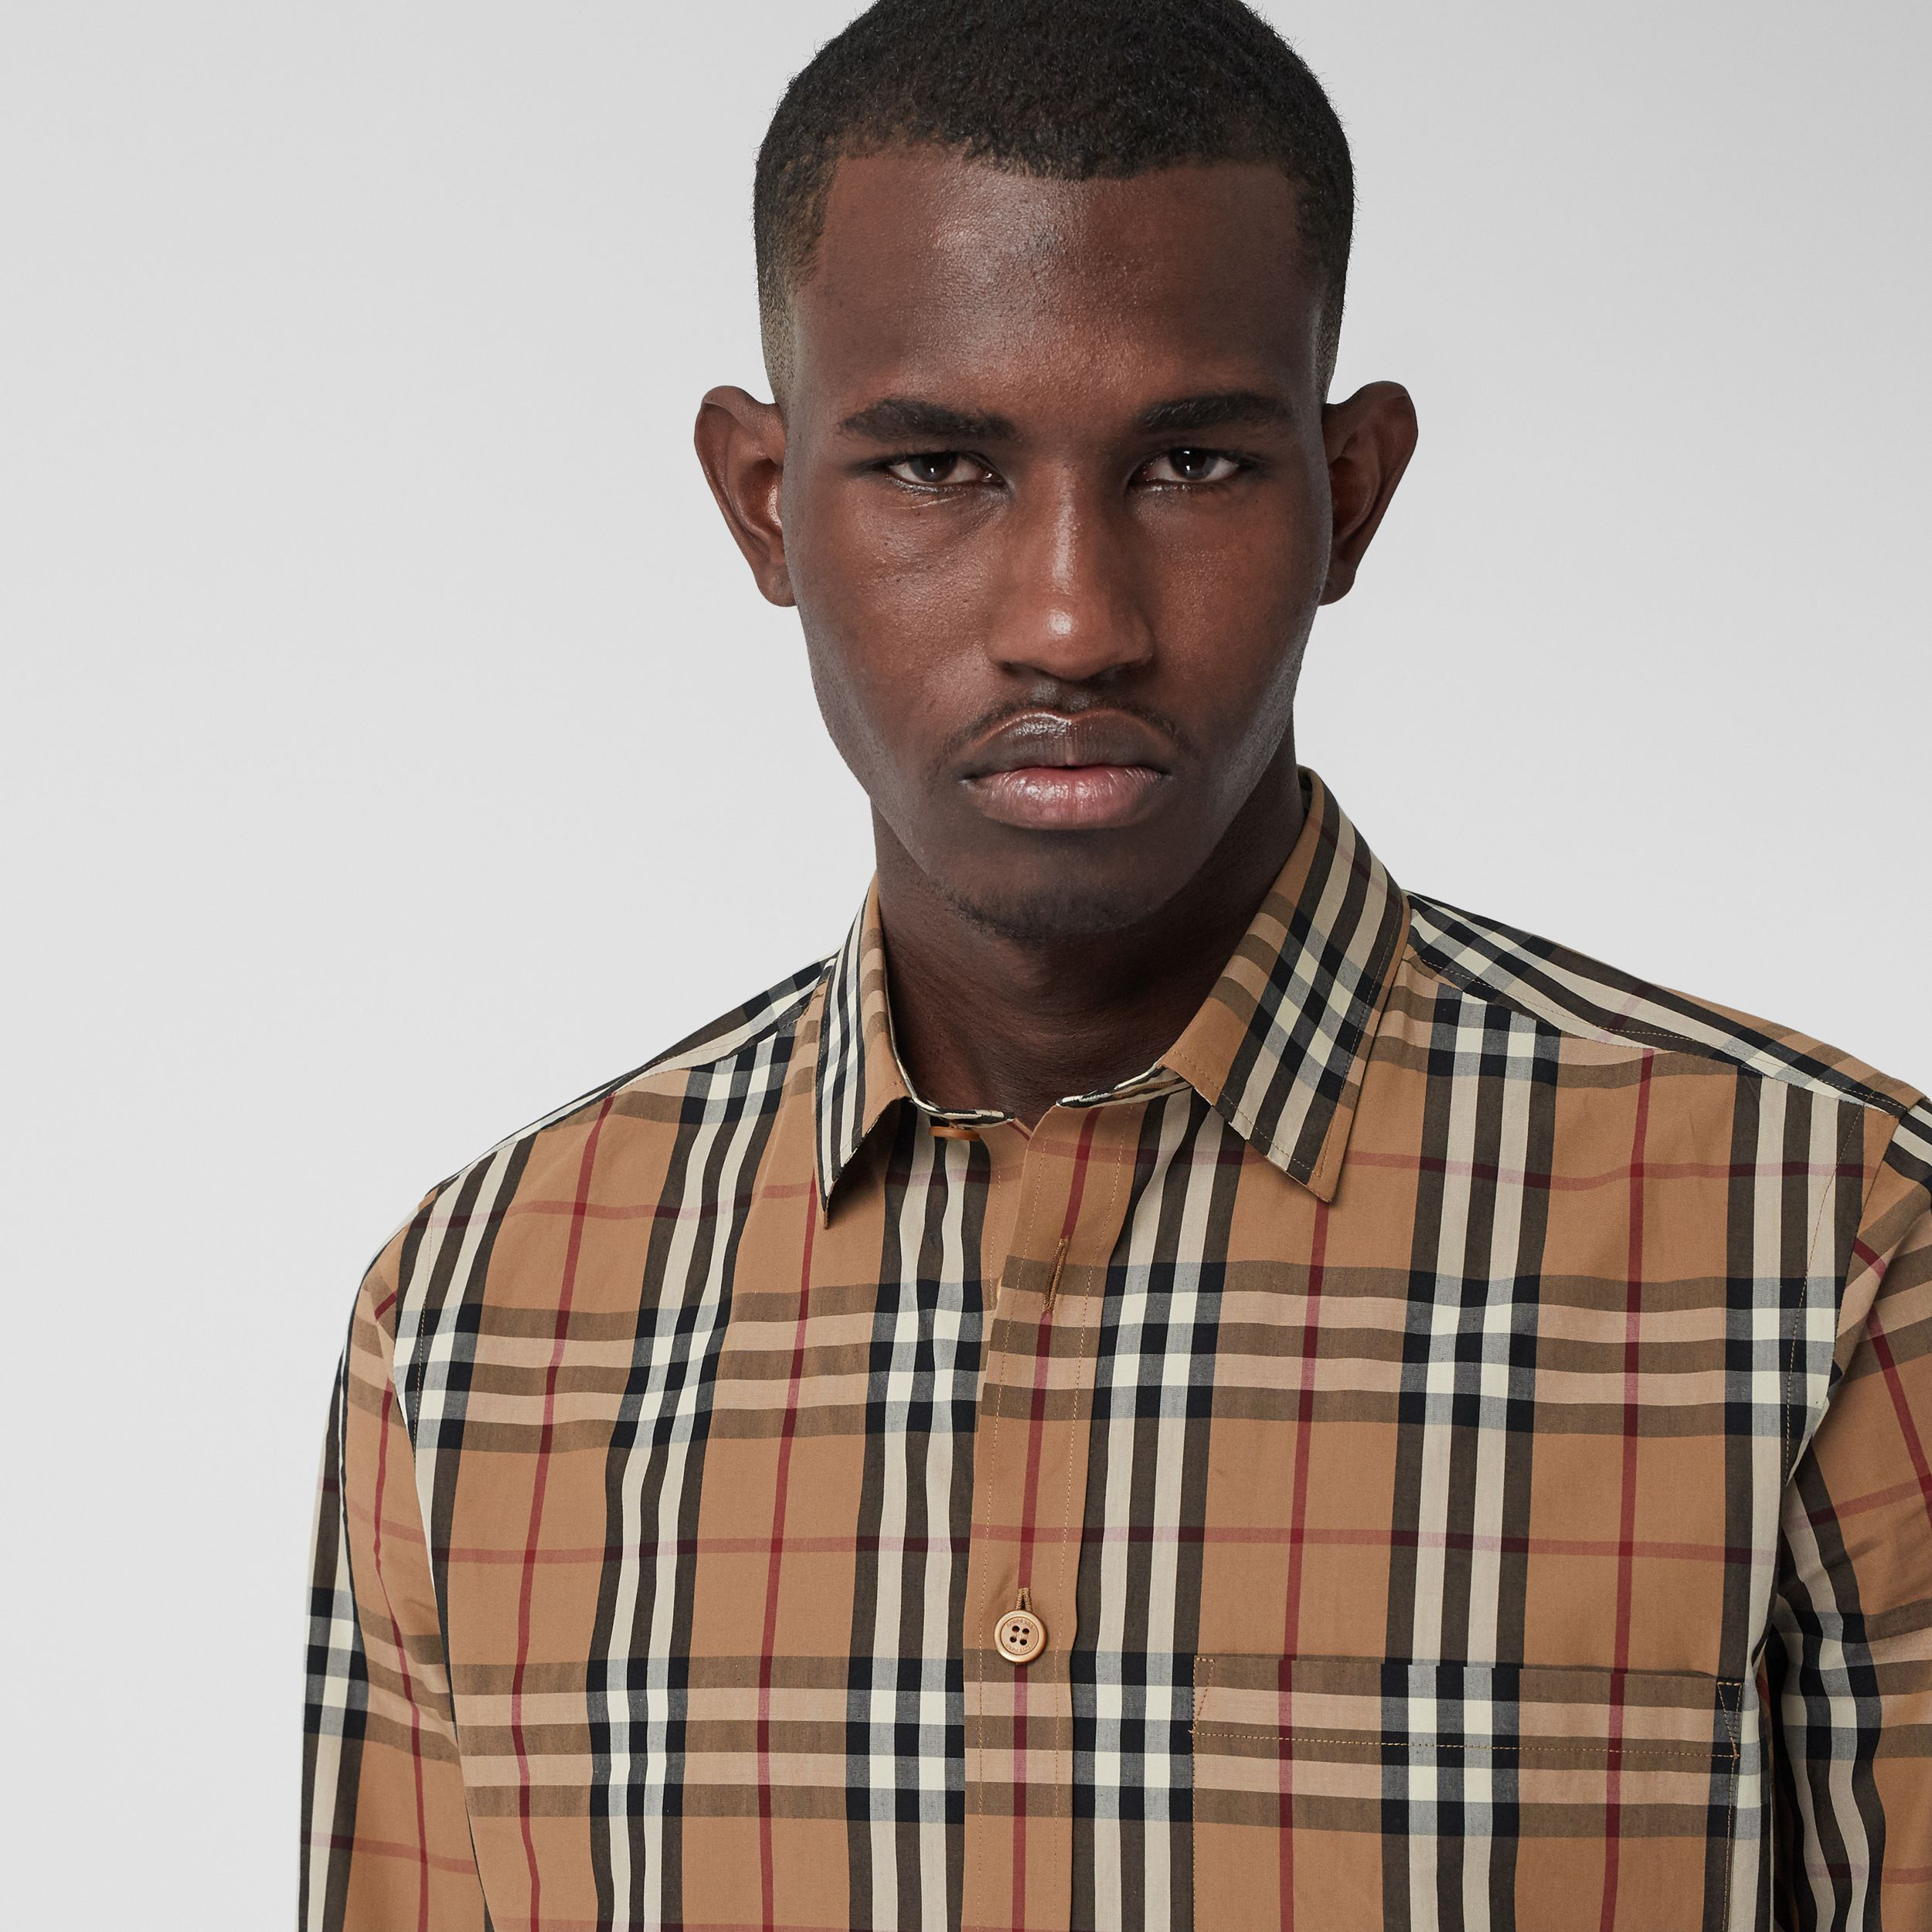 Vintage Check Cotton Poplin Shirt in Birch Brown | Burberry United States - 2